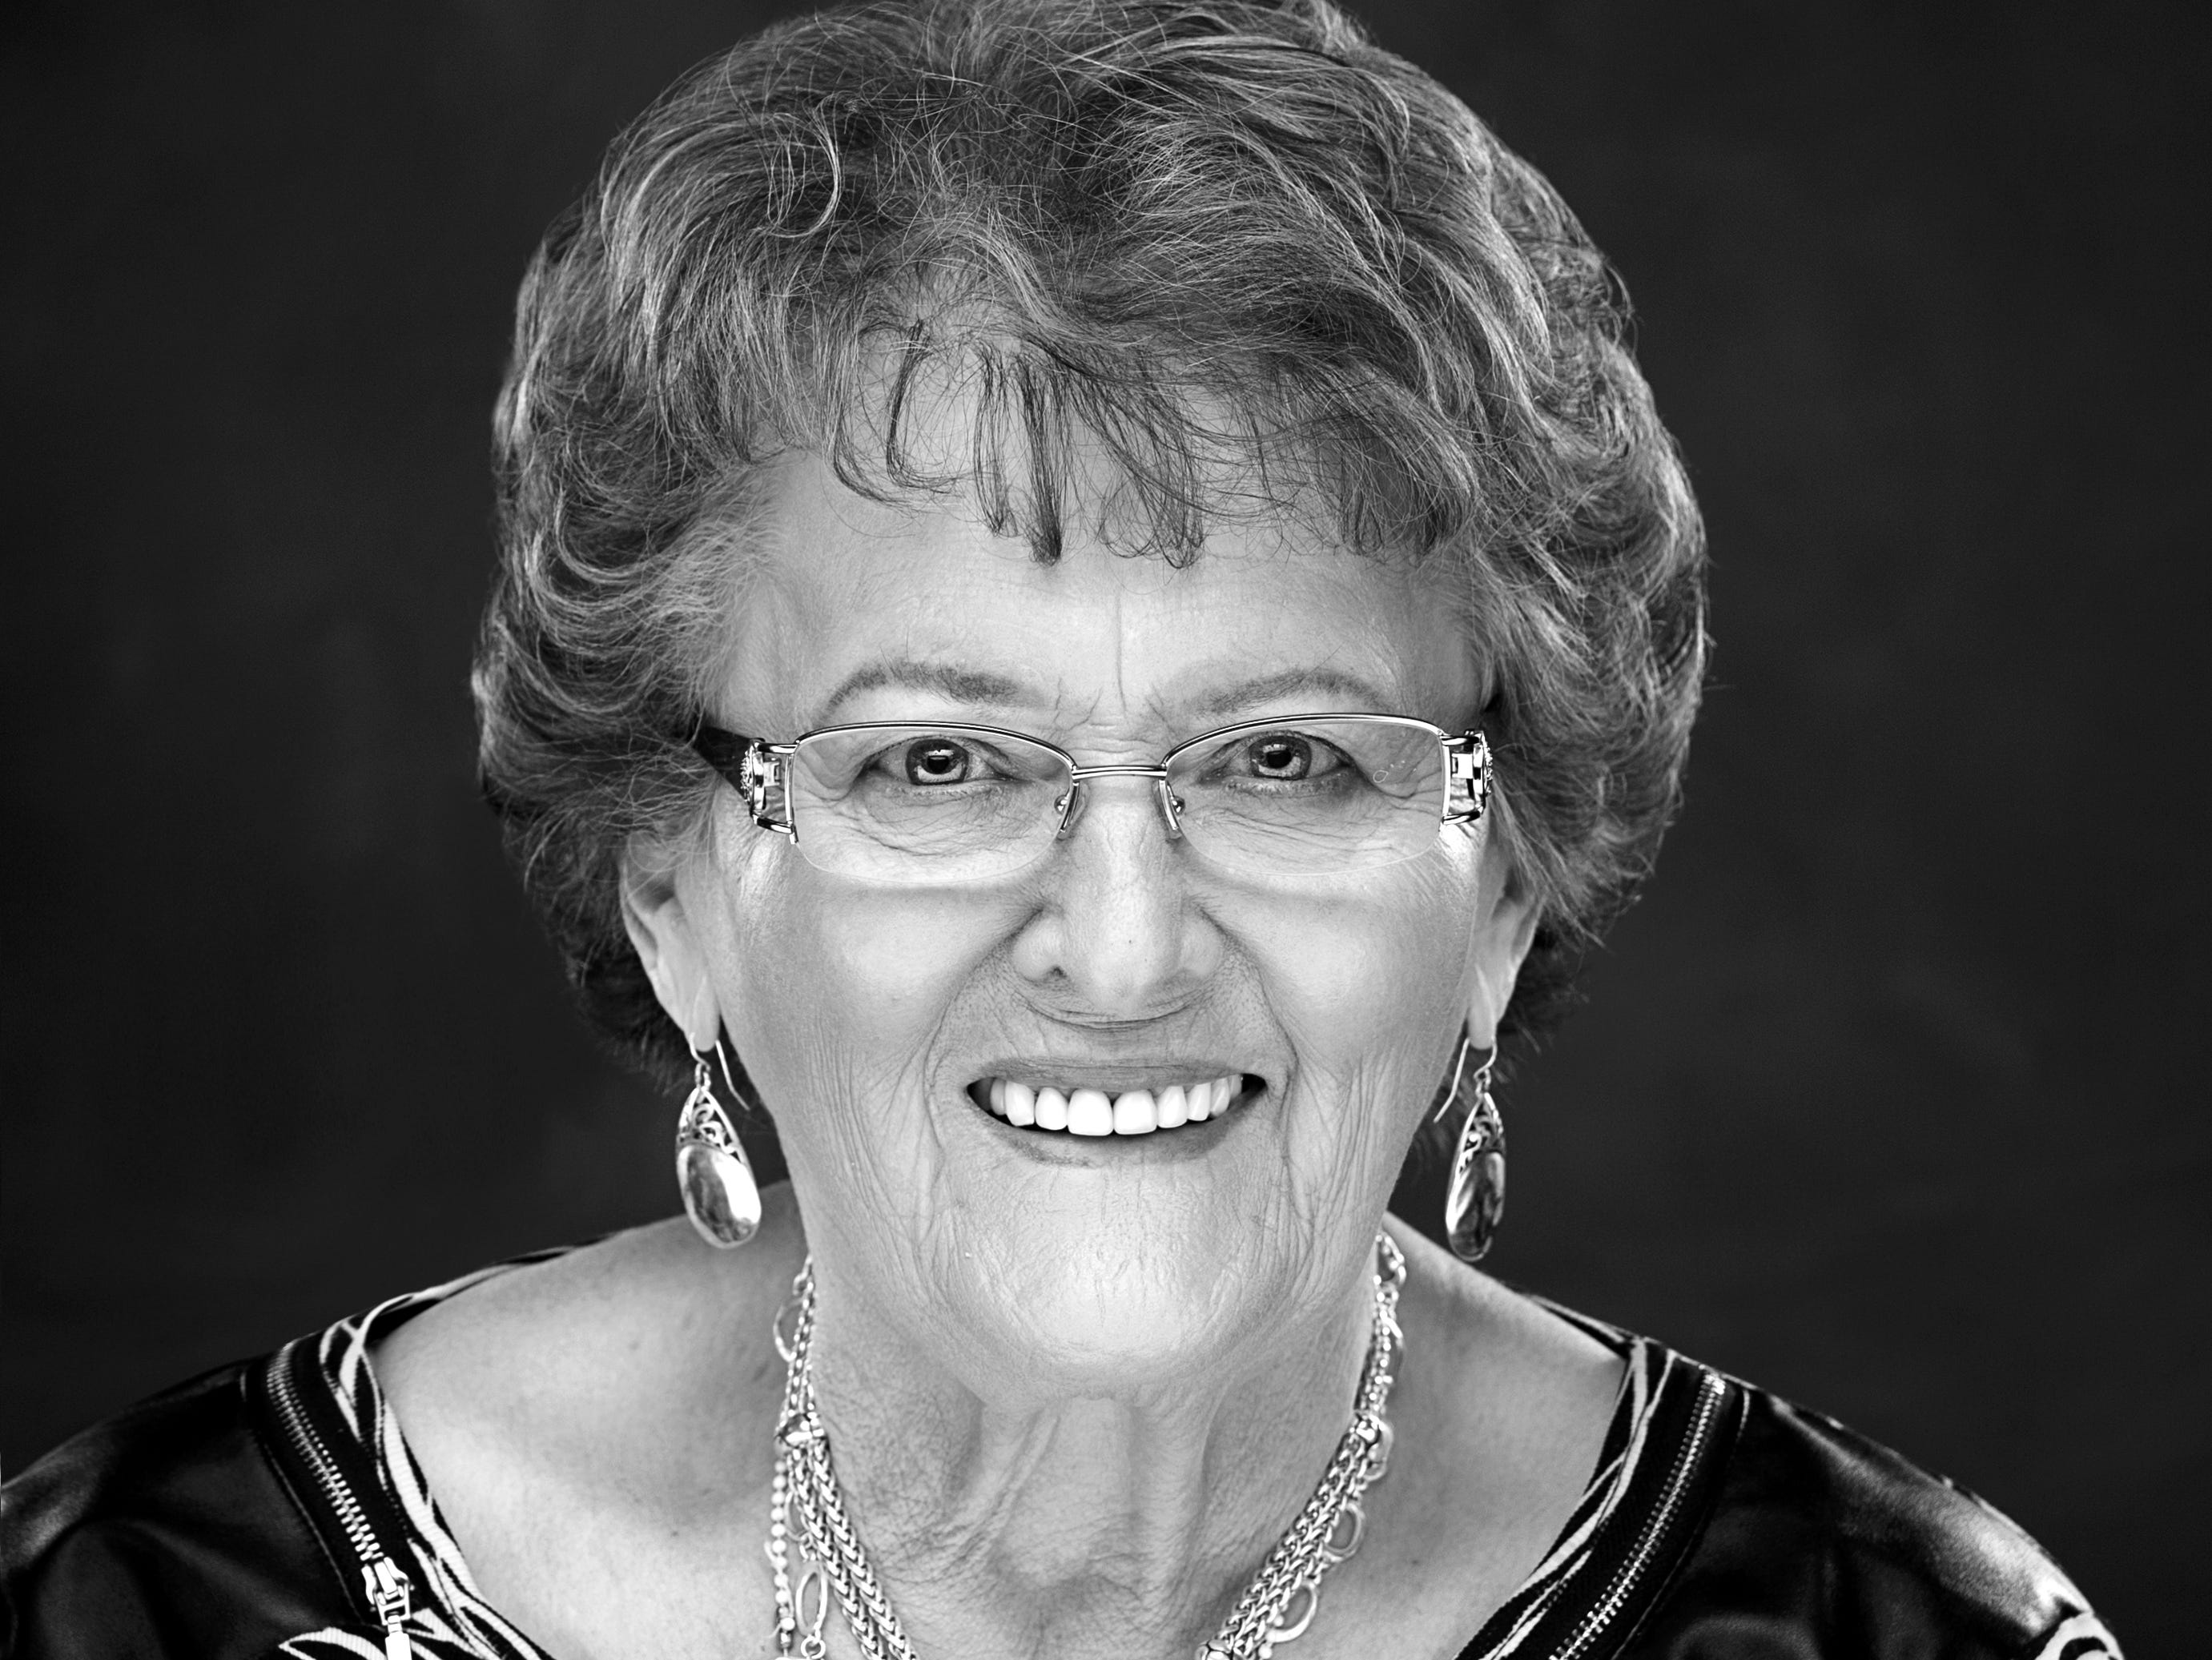 Kaye Schirle, 82: After many years as an elementary school teacher, Kaye followed her passion to teach art. She has always been ambitious, and she has sold many watercolor paintings over the years. Those who know Kaye say she is a joy, beautiful inside and out.